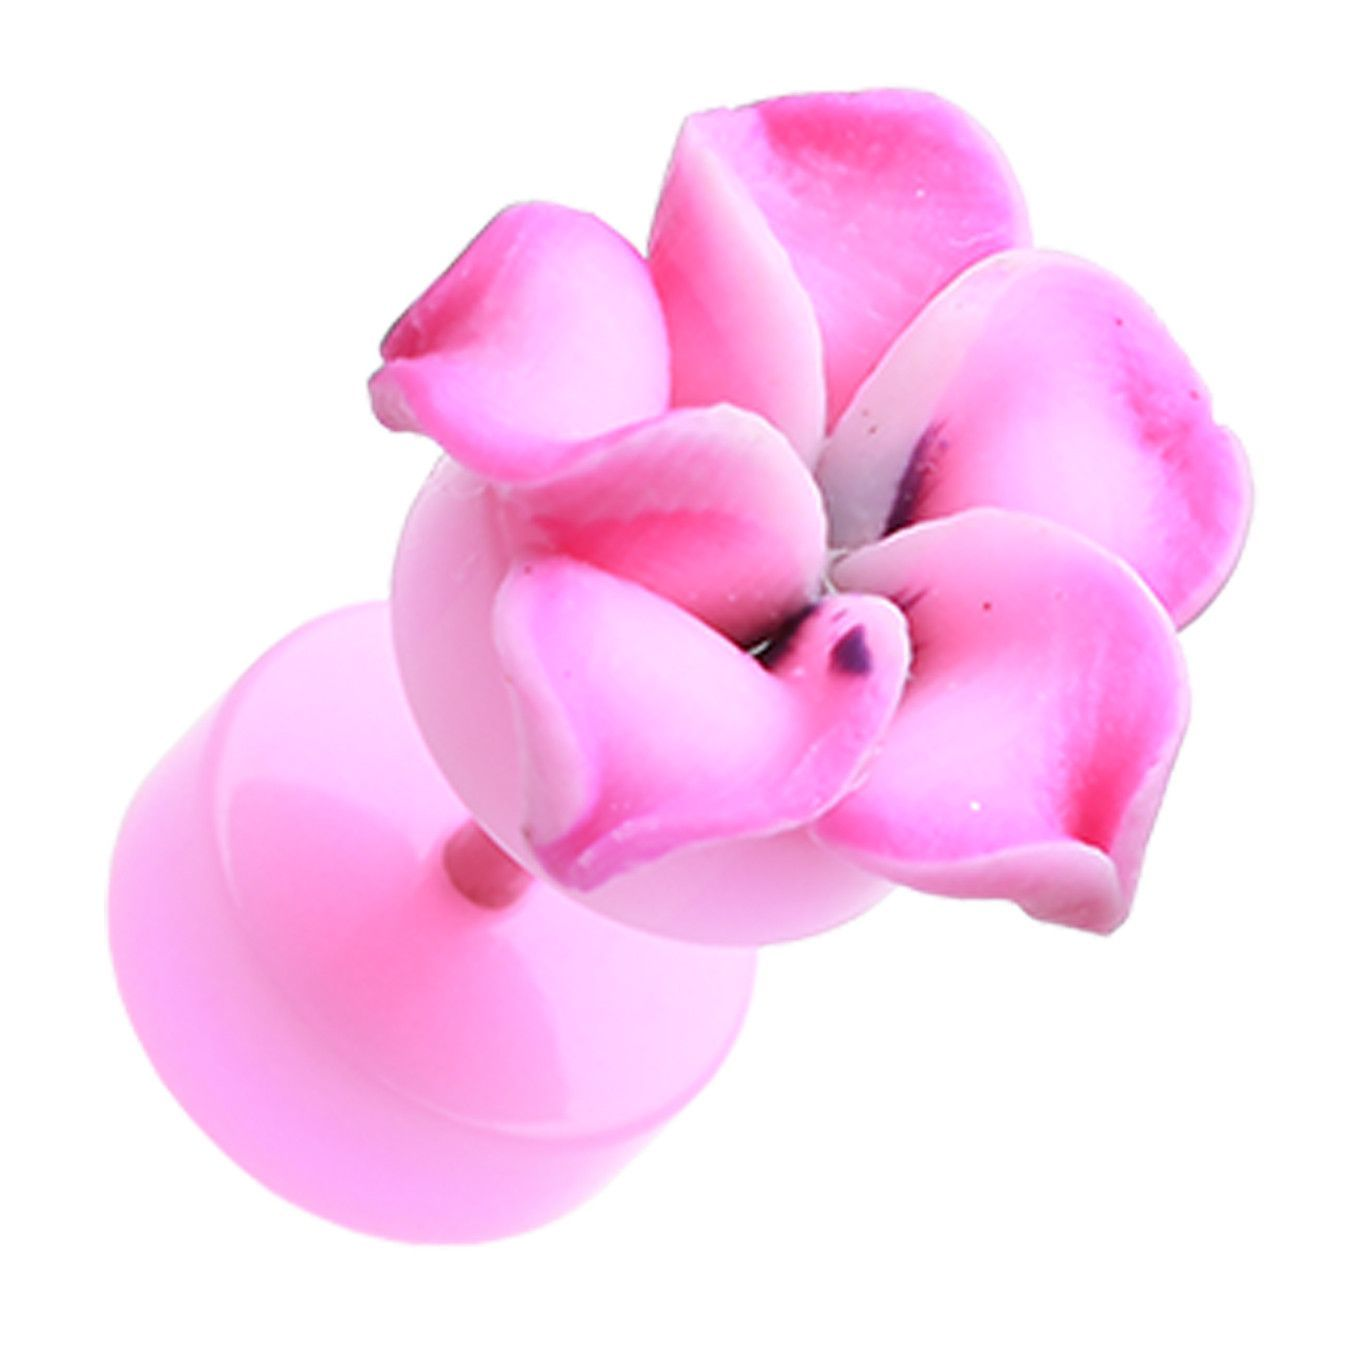 Hawaiian plumeria flower acrylic fake plug fake plugs and products hawaiian plumeria flower acrylic fake plug izmirmasajfo